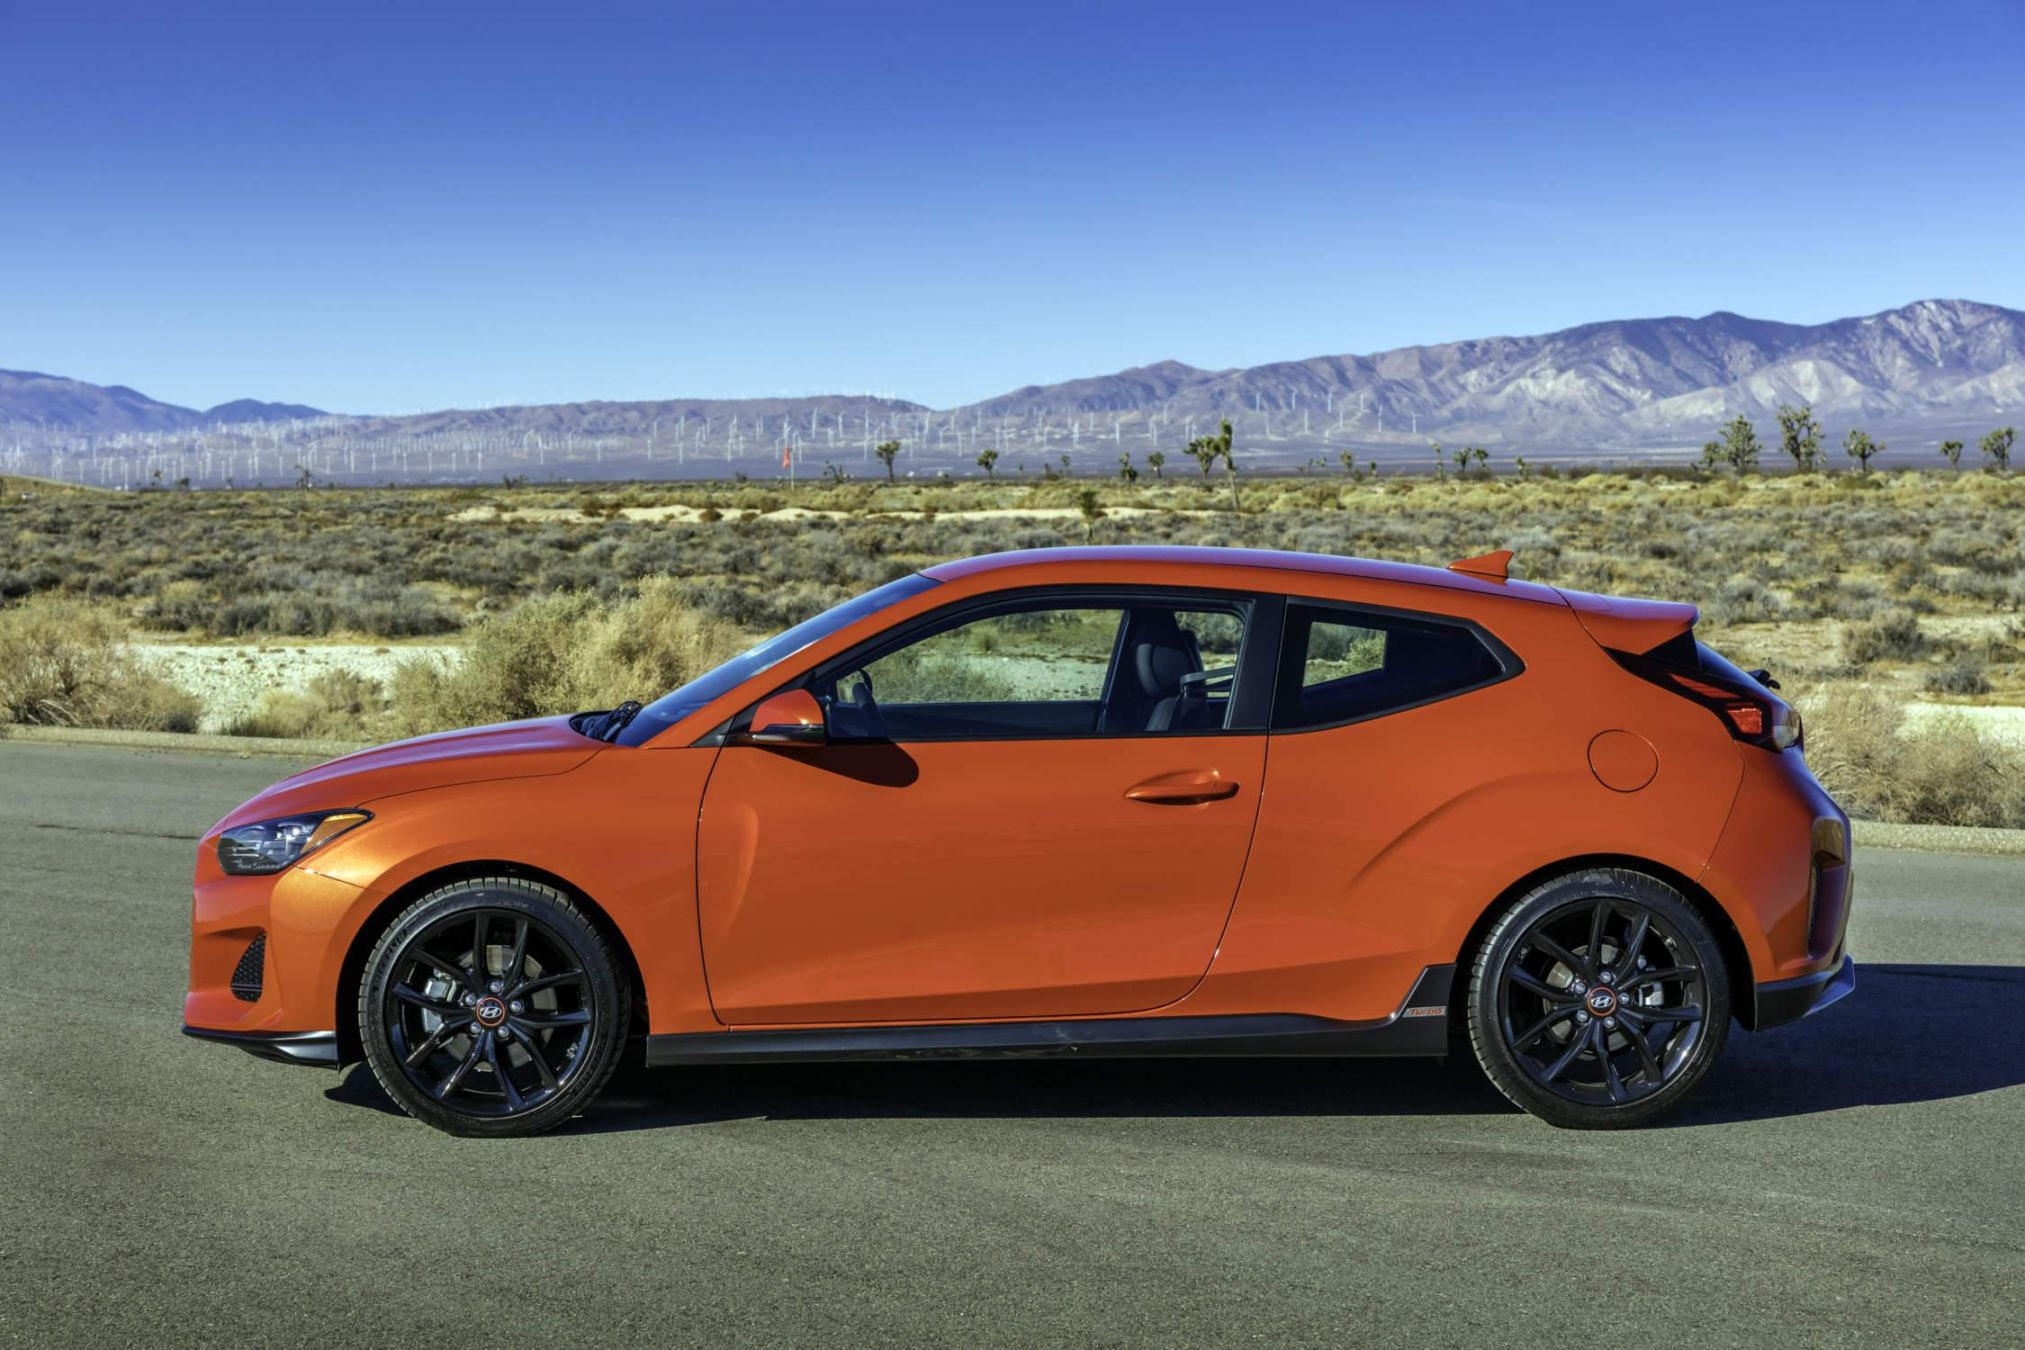 Le Hyundai Veloster fait son come-back — Salon de Detroit